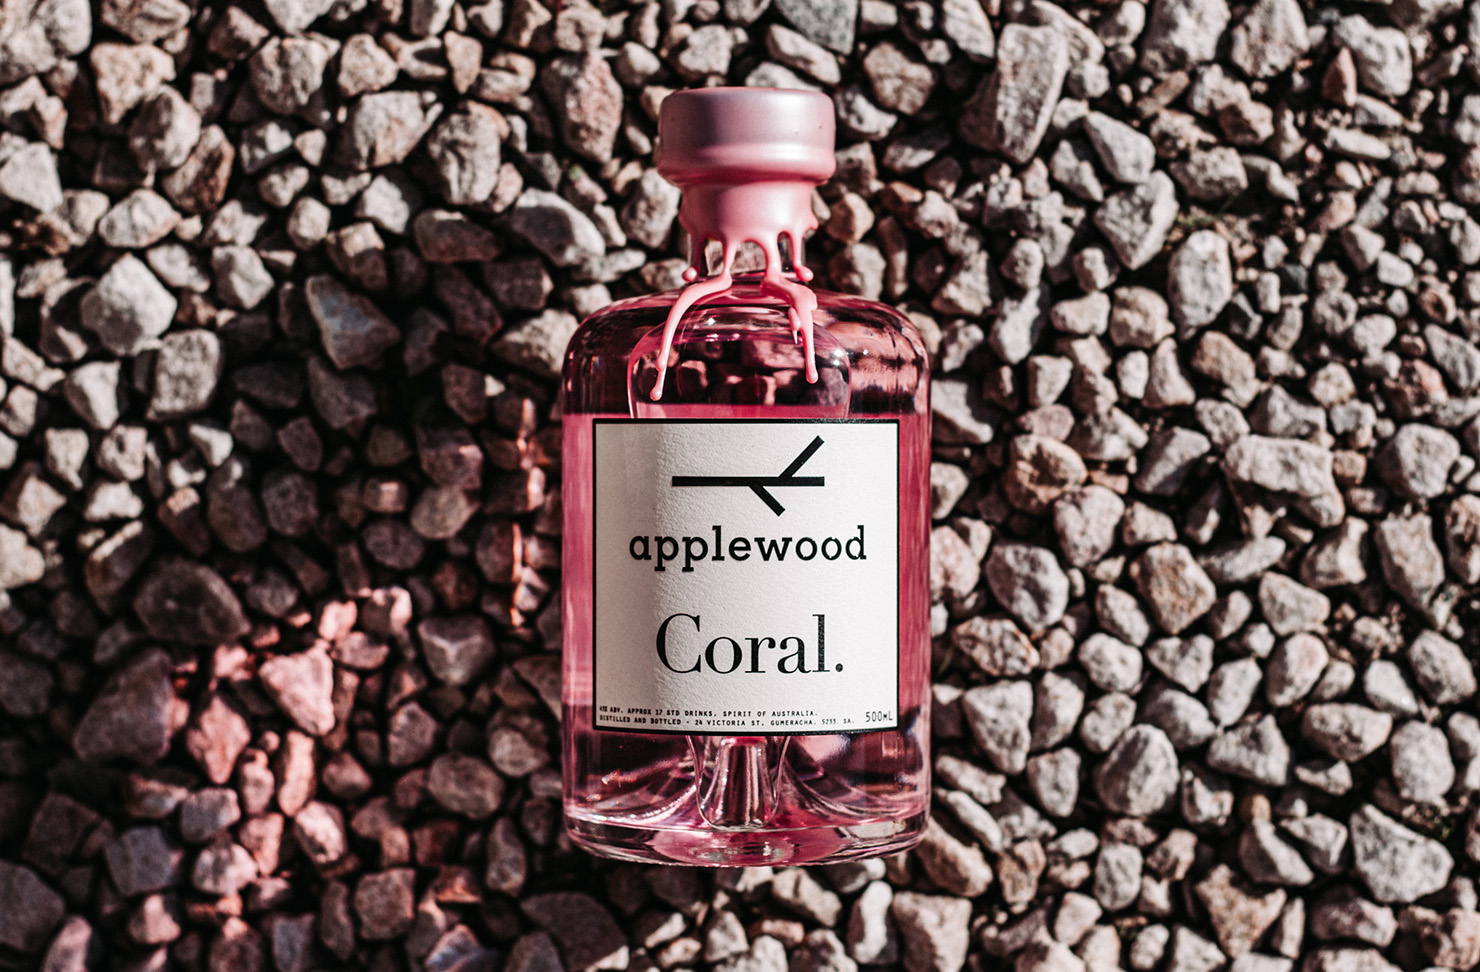 Applewood's baby pink Coral bottle of gin.